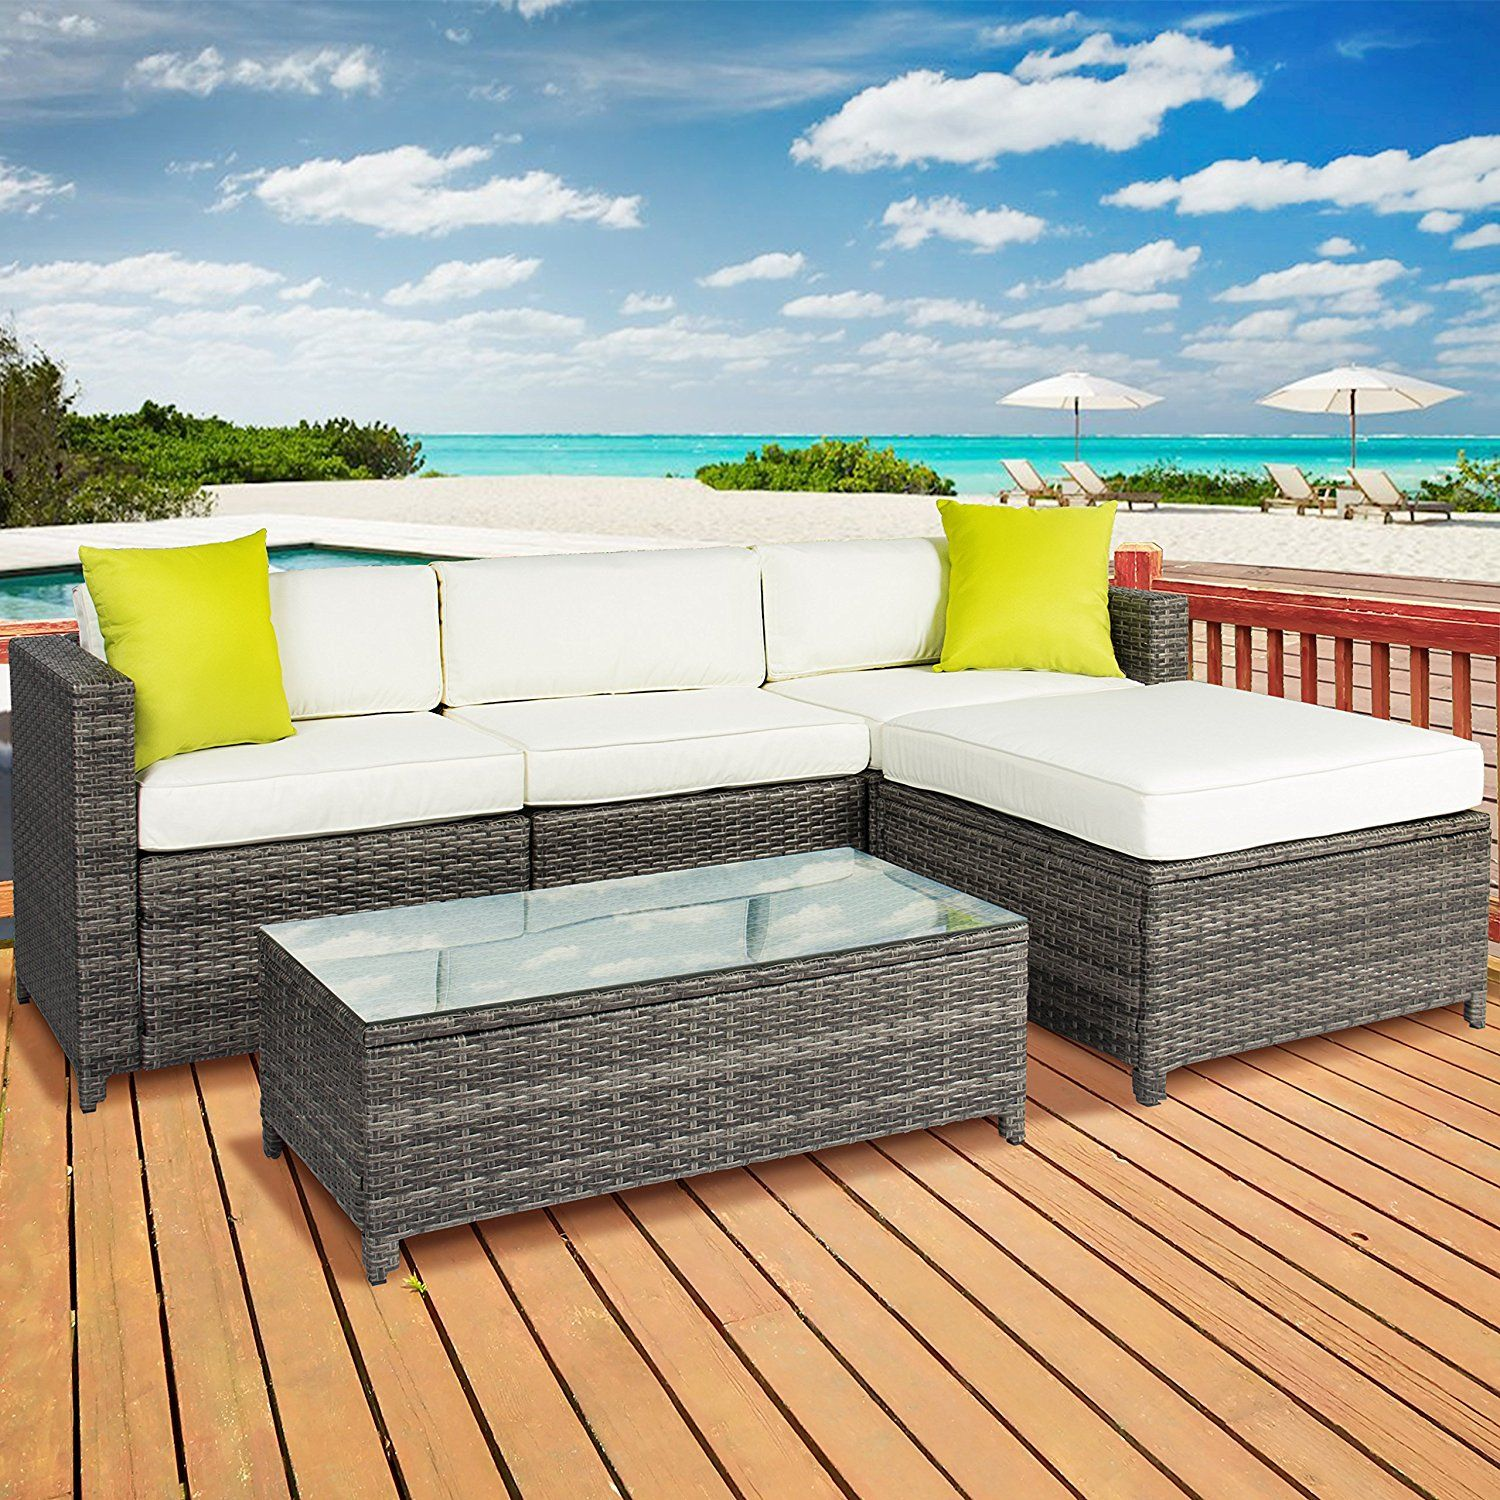 Amazon.com : Best Choice Products 5PC Rattan Wicker Sofa Set Cushioned  Sectional Outdoor Garden